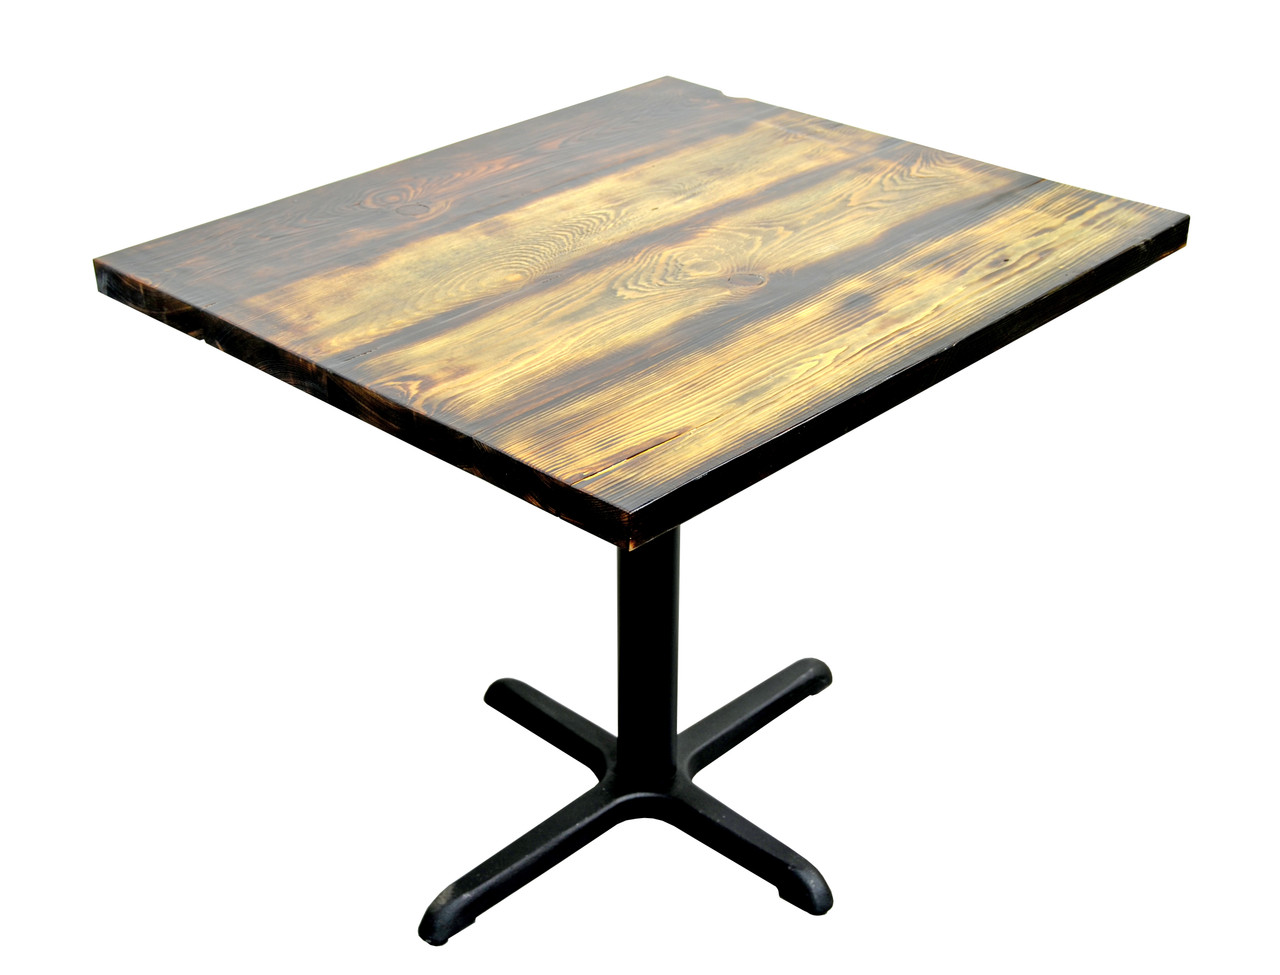 Reclaimed Wood Environmentally Friendly Wood Restaurant Table With Iron Cast Legs